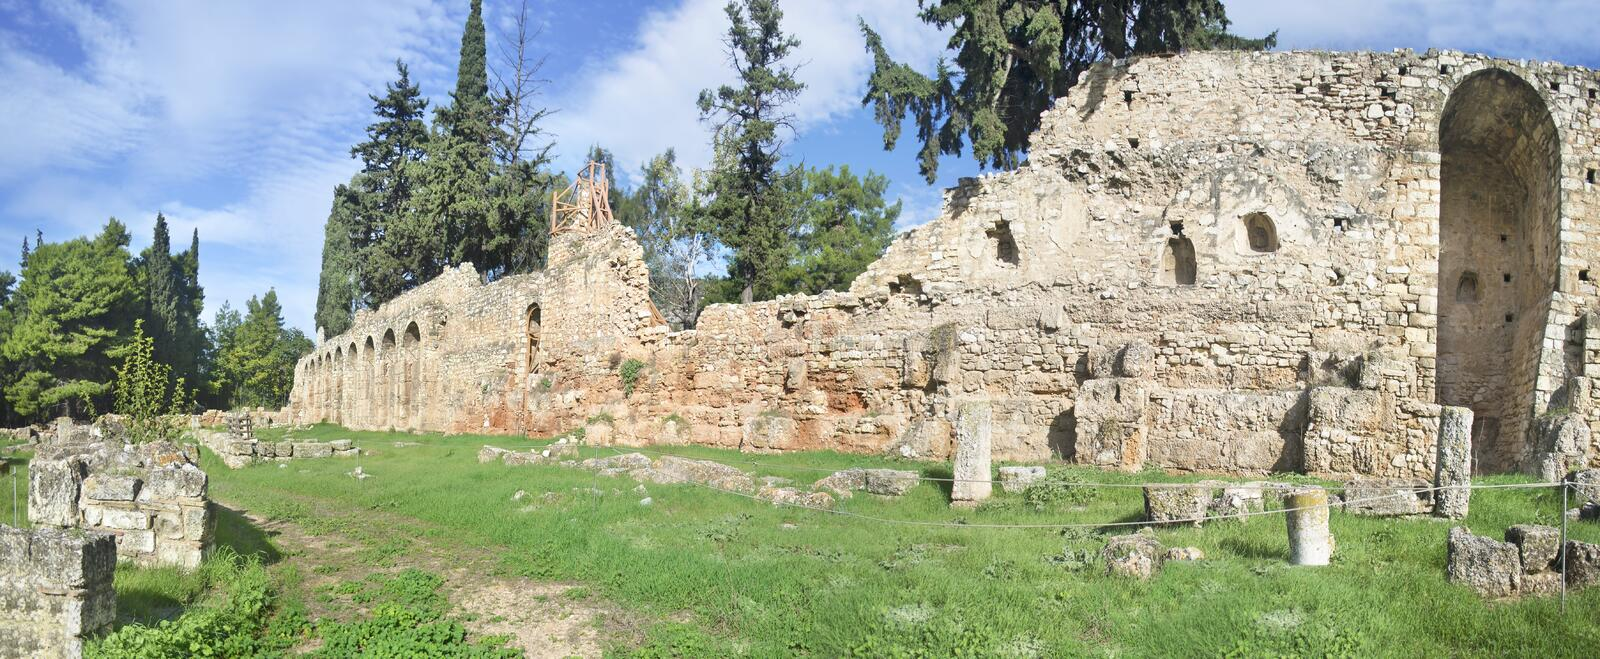 Panoramic landscape of Daphni Monastery Athens Greece stock photography